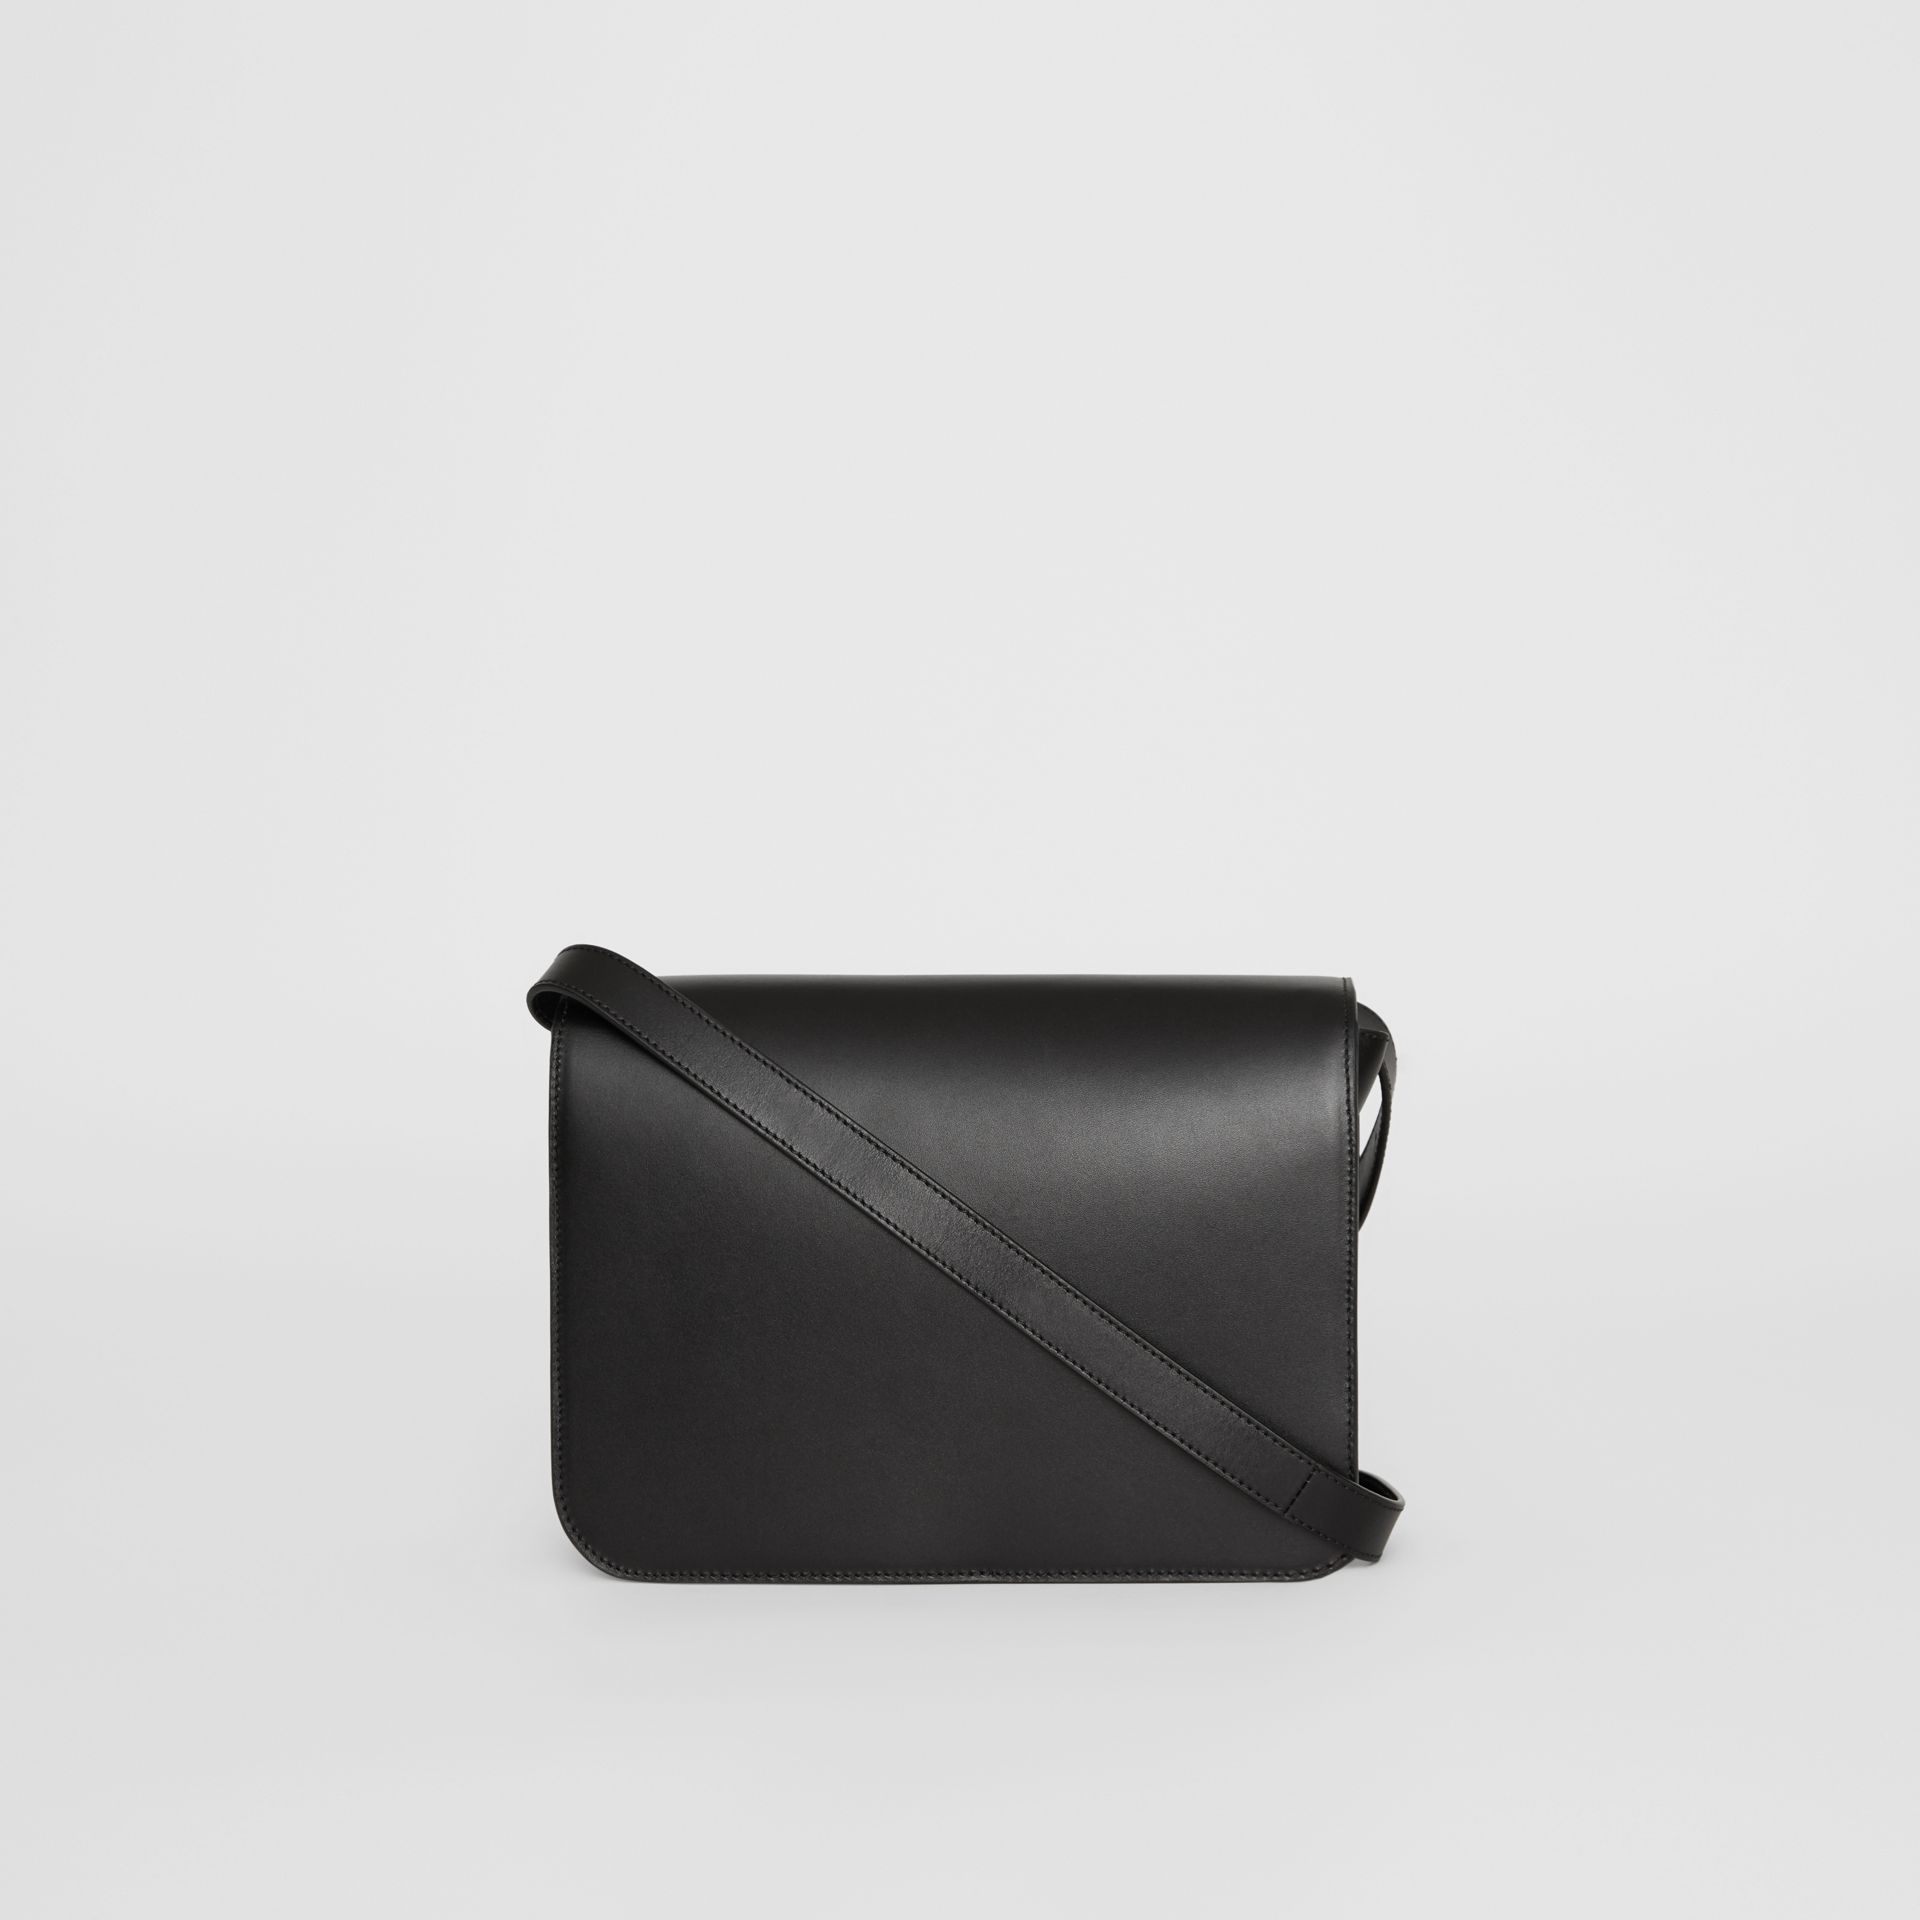 Medium Leather TB Bag in Black - Women | Burberry Australia - gallery image 7